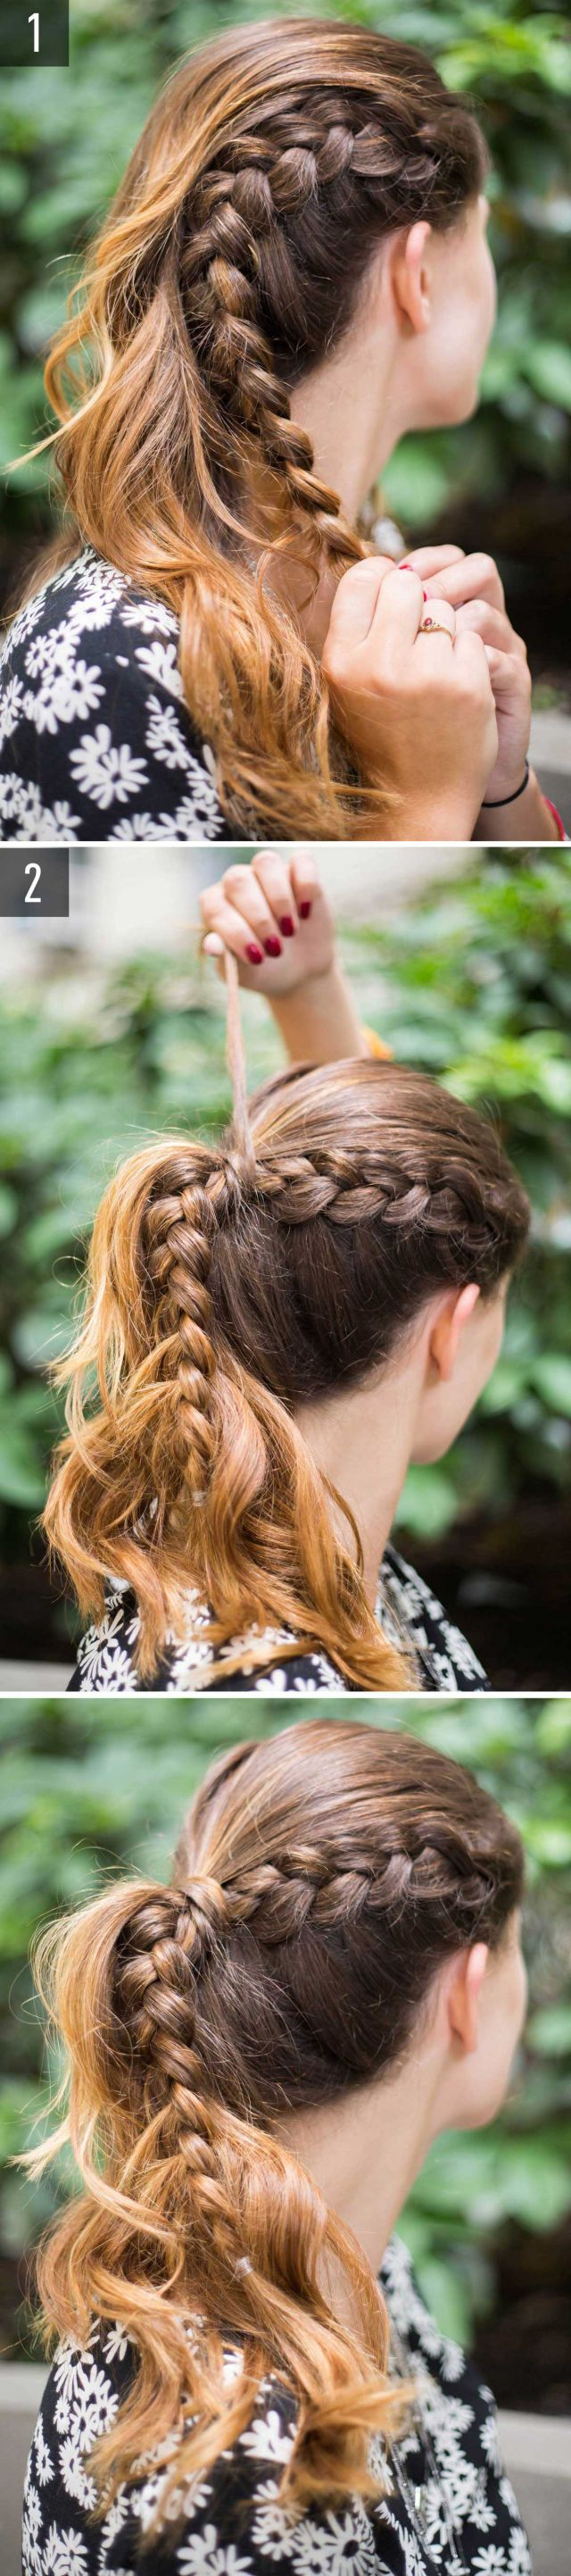 15 pettinature per capelli lunghi facili e risolutive per le vacanze -cosmopolitan.it